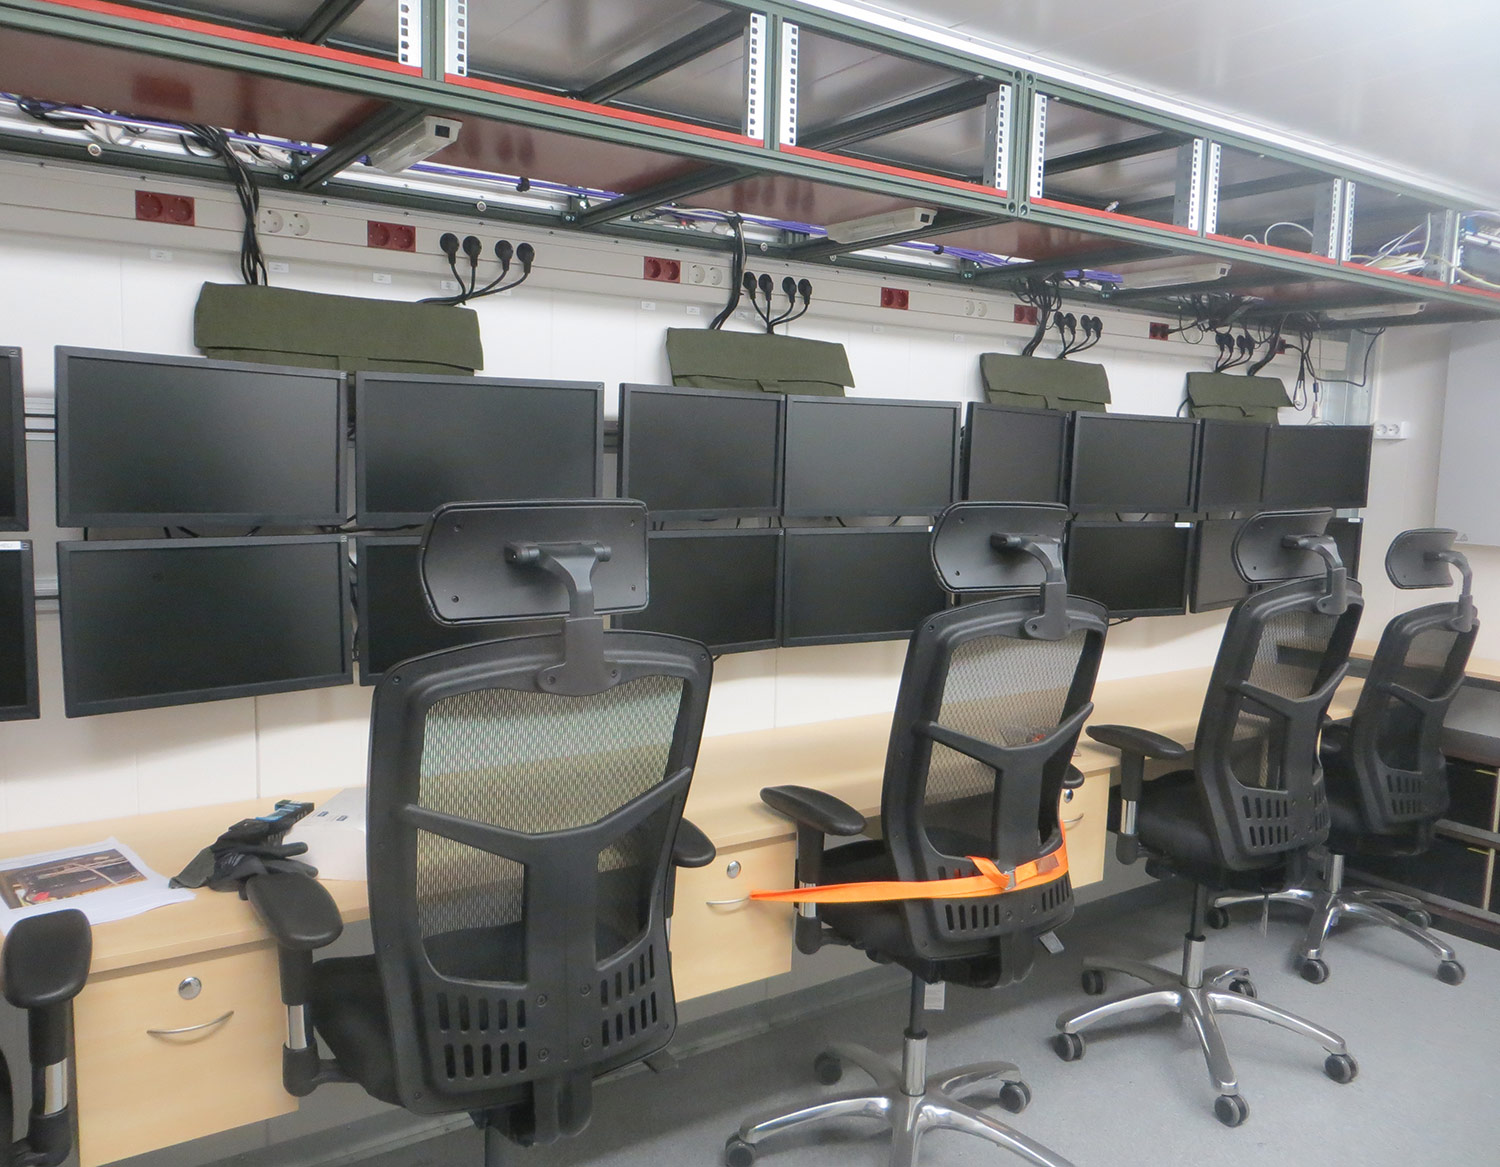 Command center for military or rescue